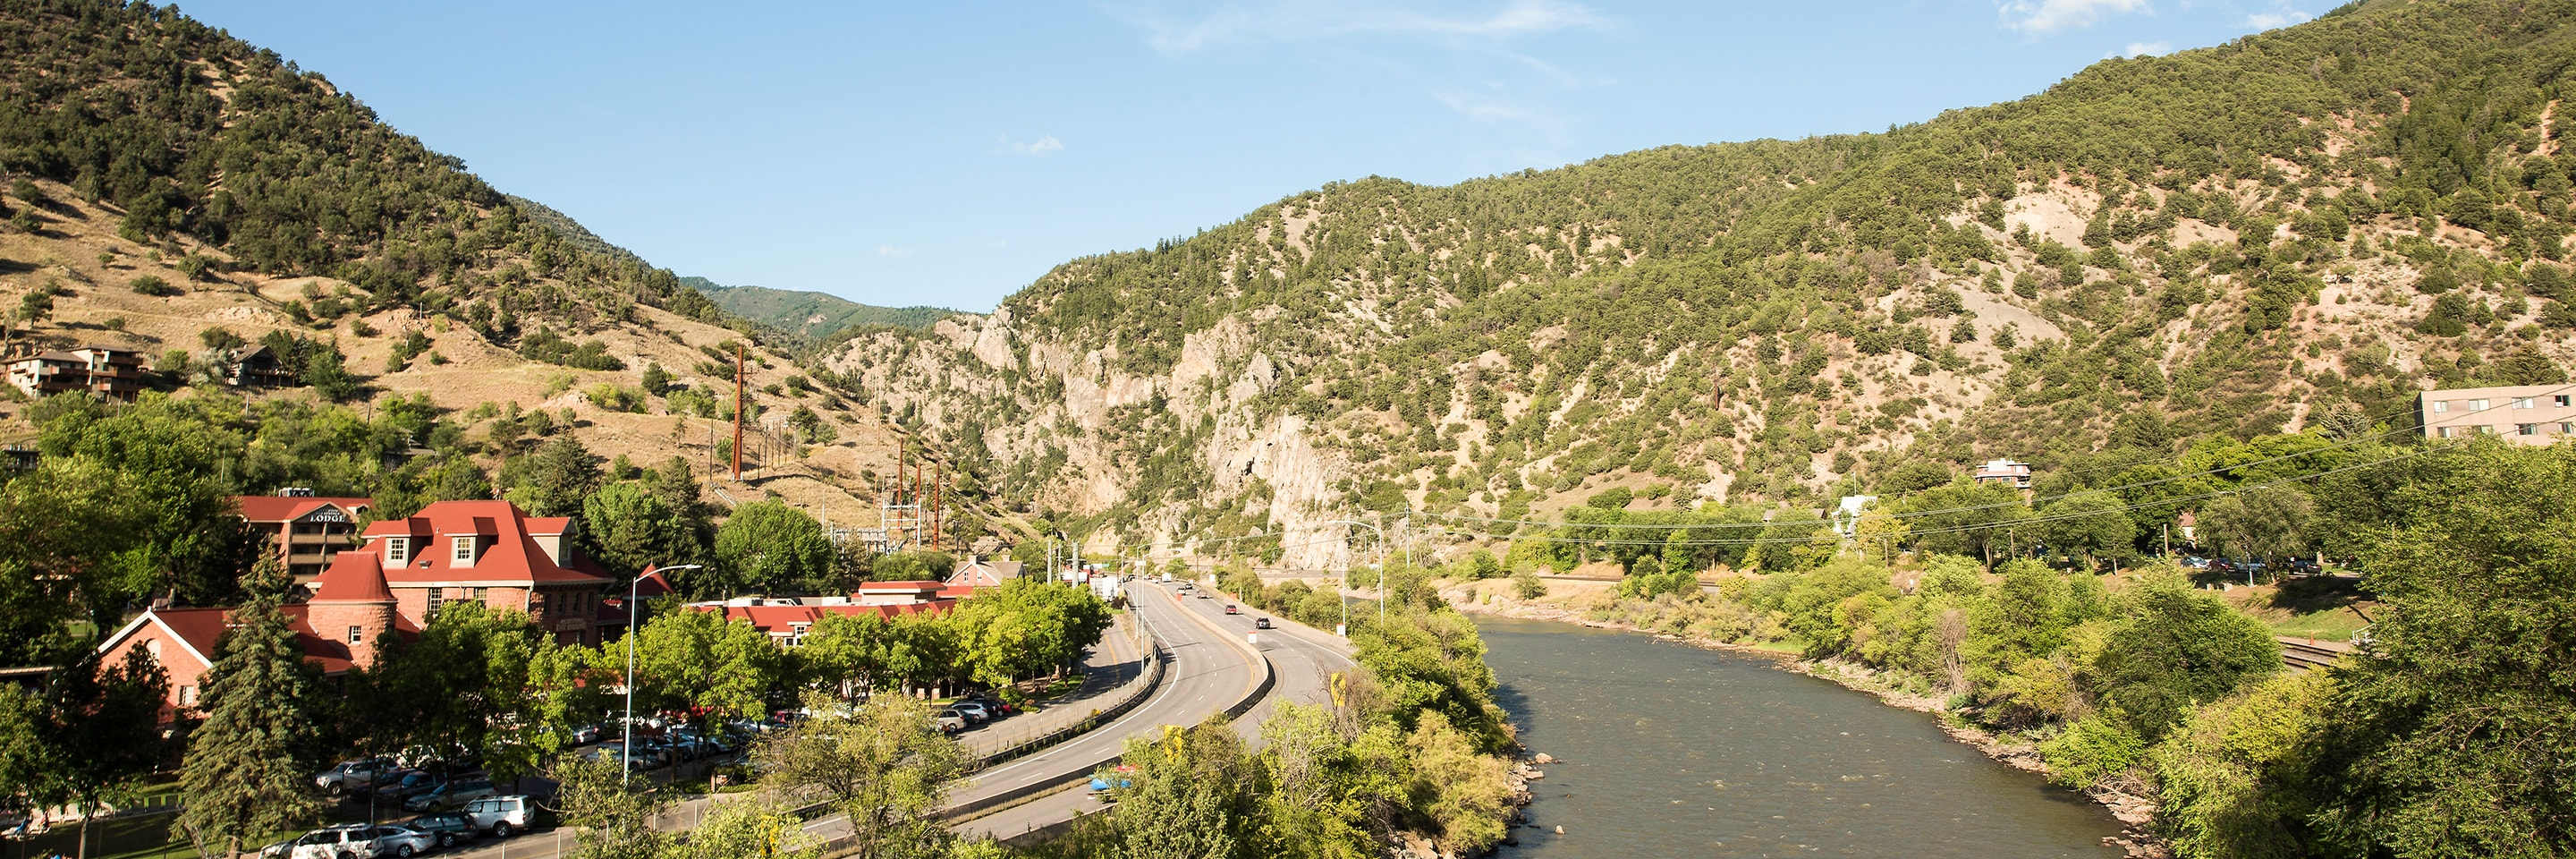 Hoteles en Glenwood Springs